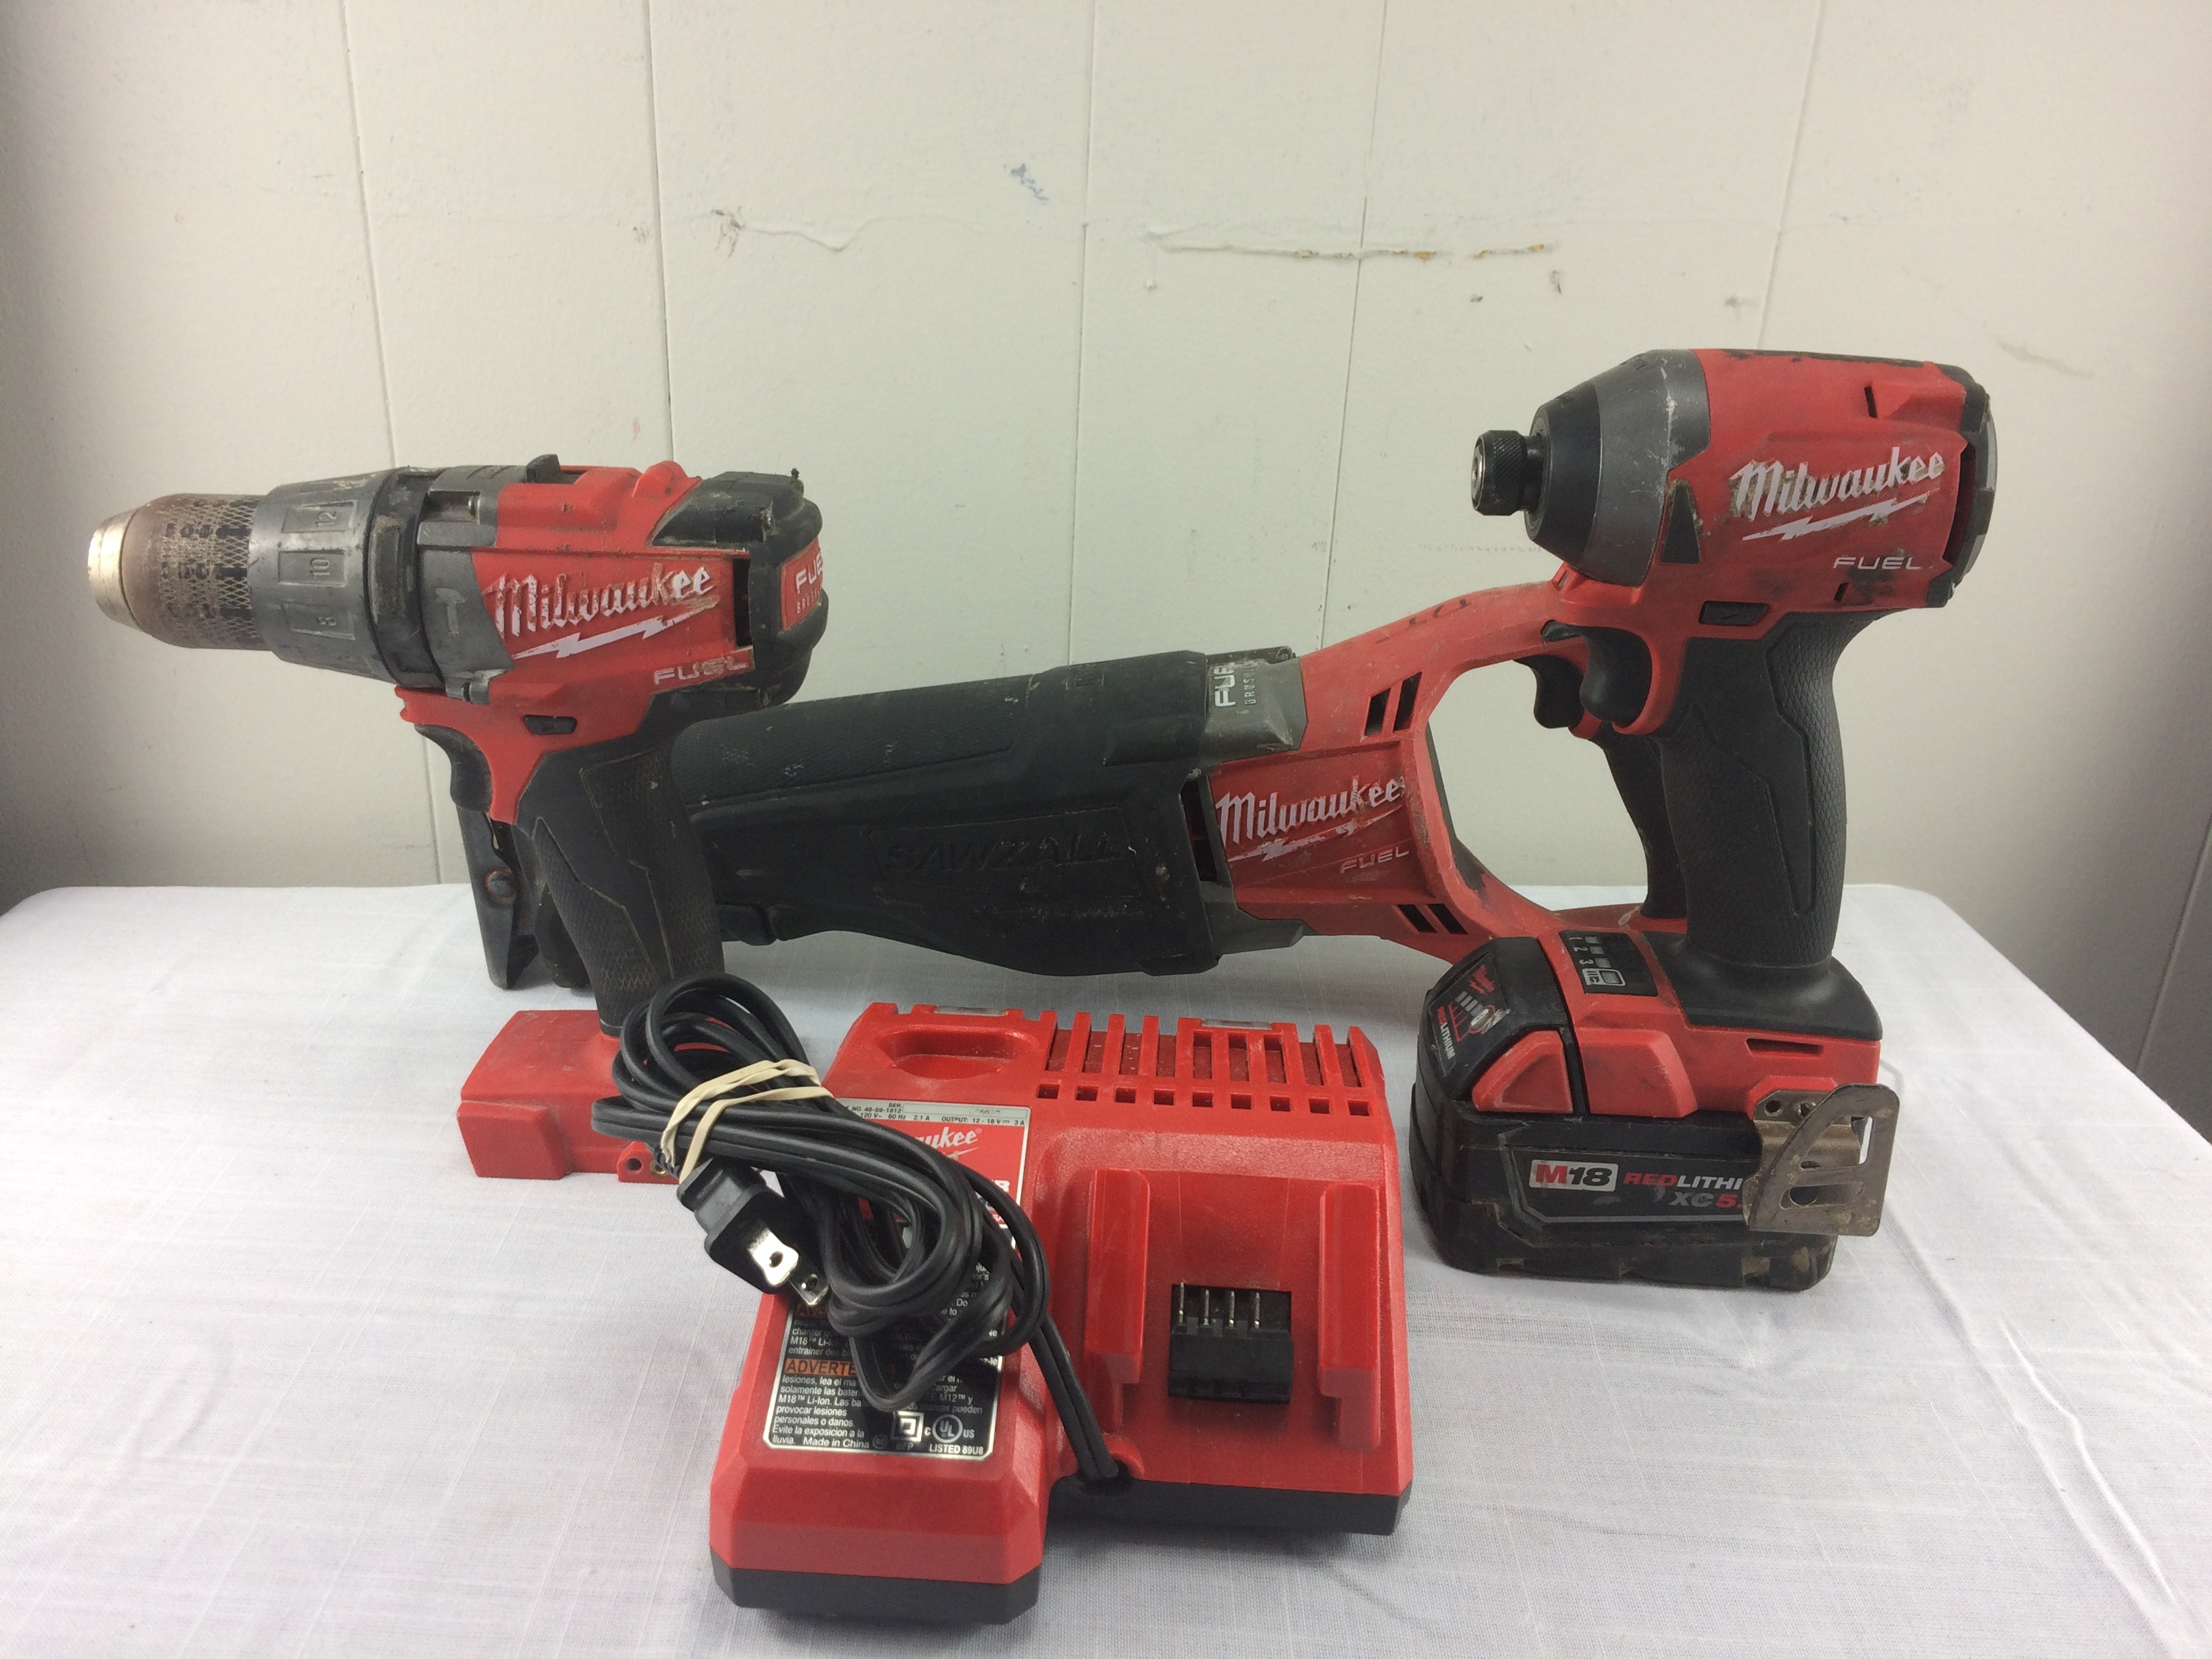 Milwaukee Power Tool Set - Brushless Driver, Impact and Sawzall